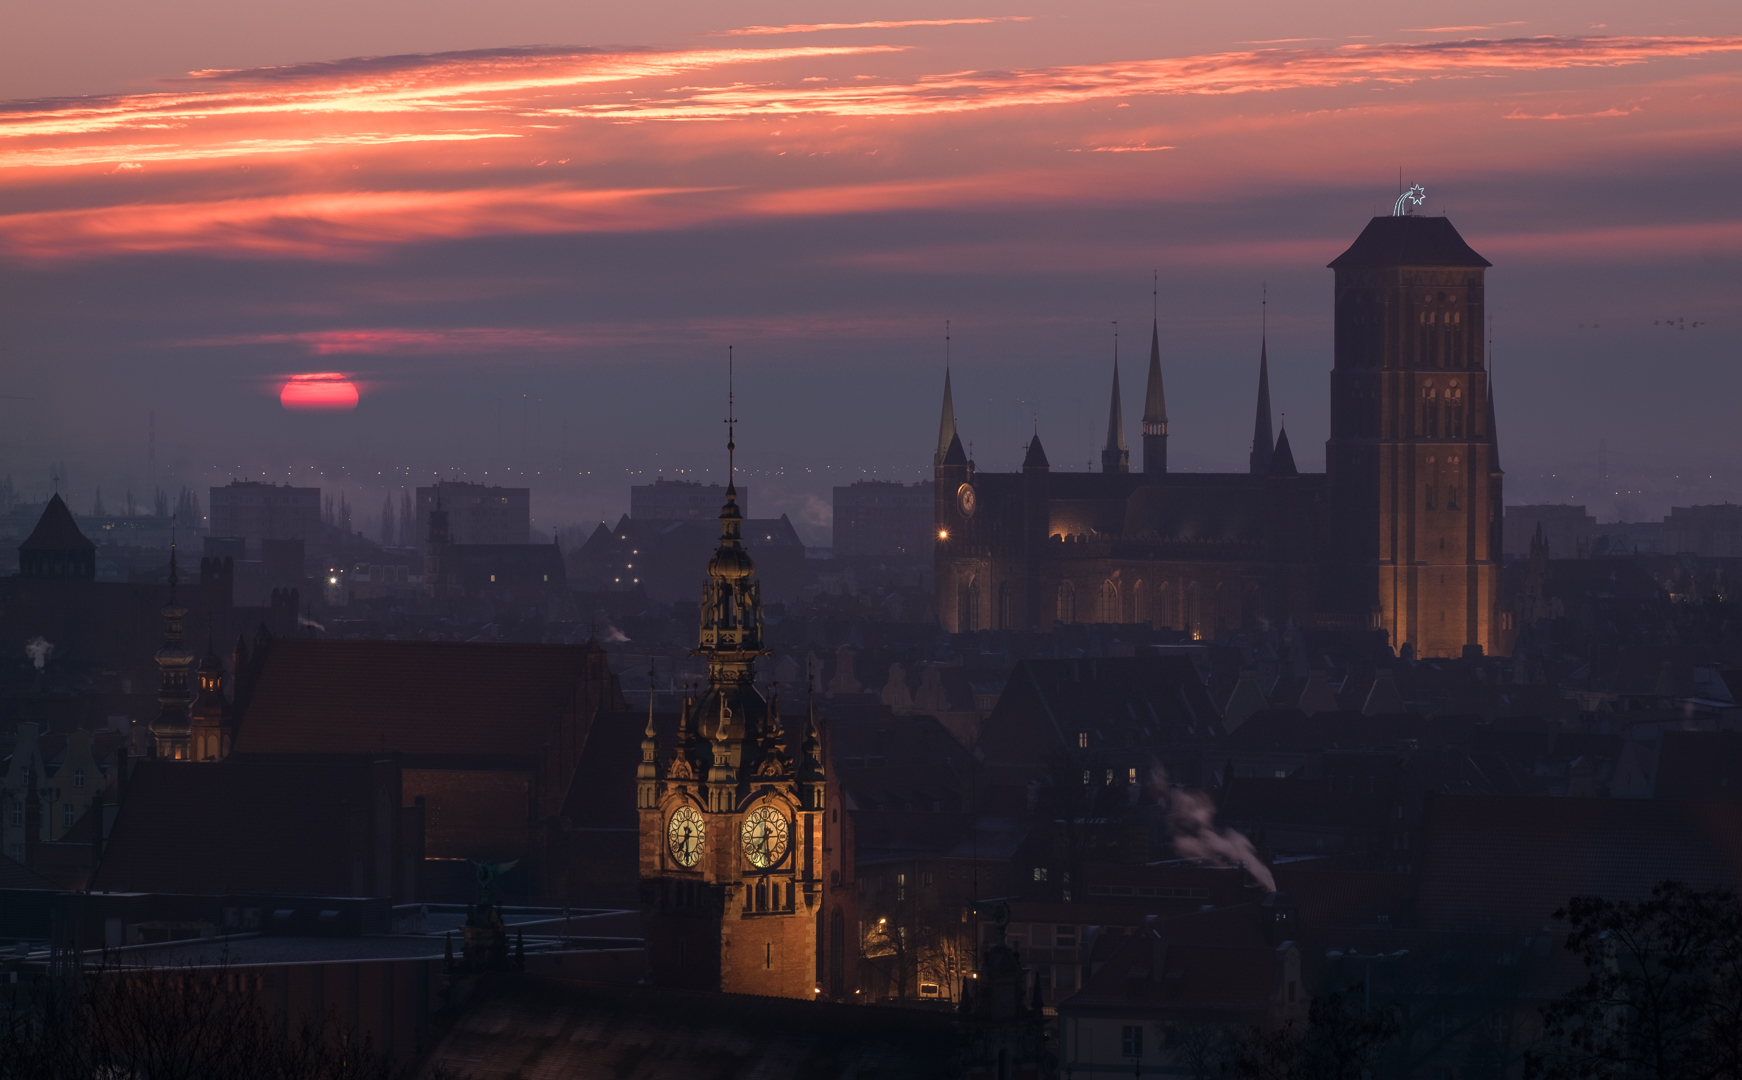 Sunrise in Gdansk